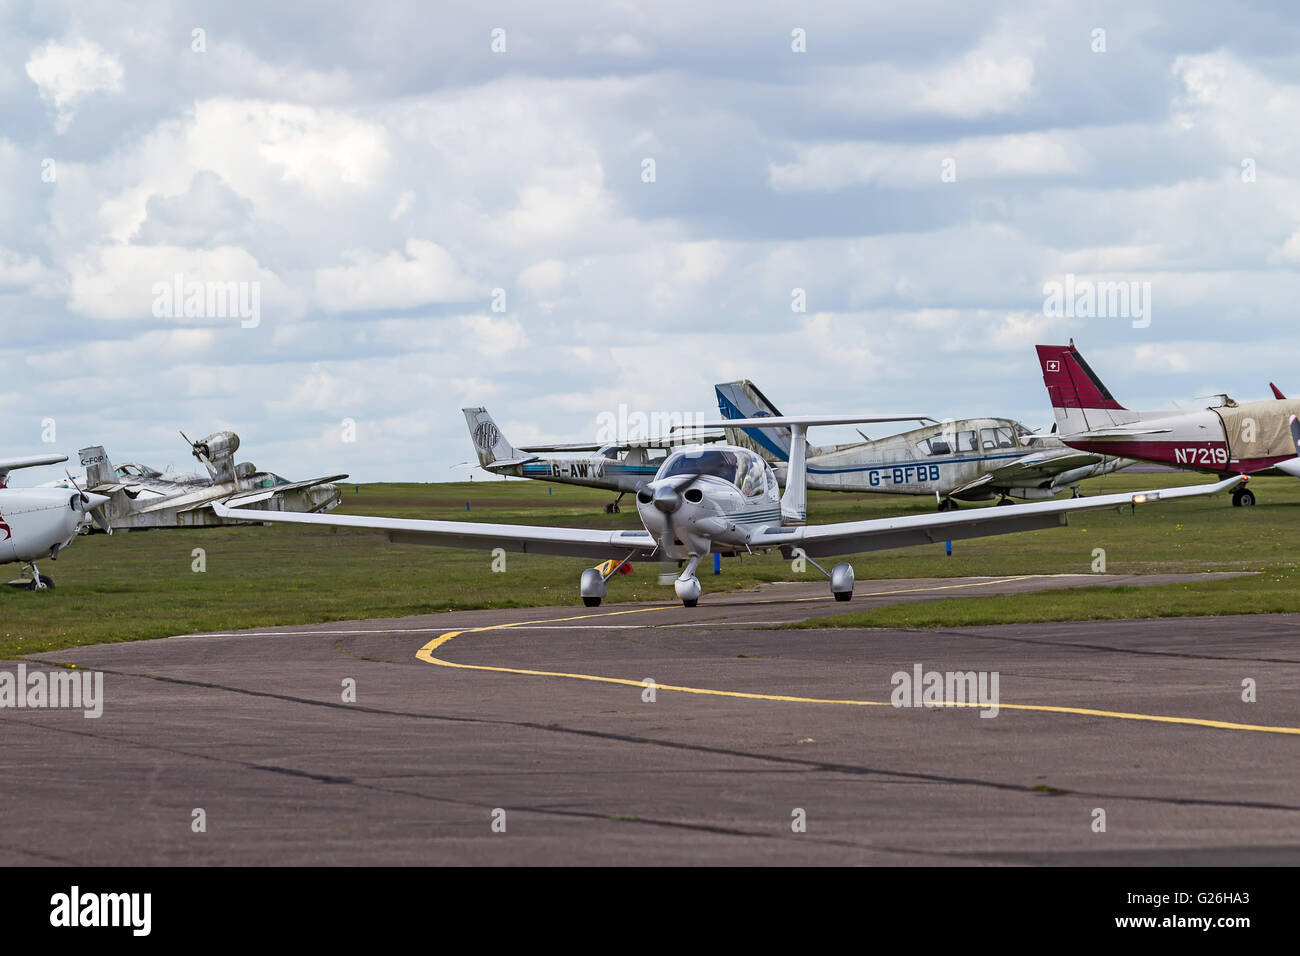 A low winged, high tailed monoplane taxis past some less well used light aircraft at Elstree Airfield, Hertfordshire, - Stock Image